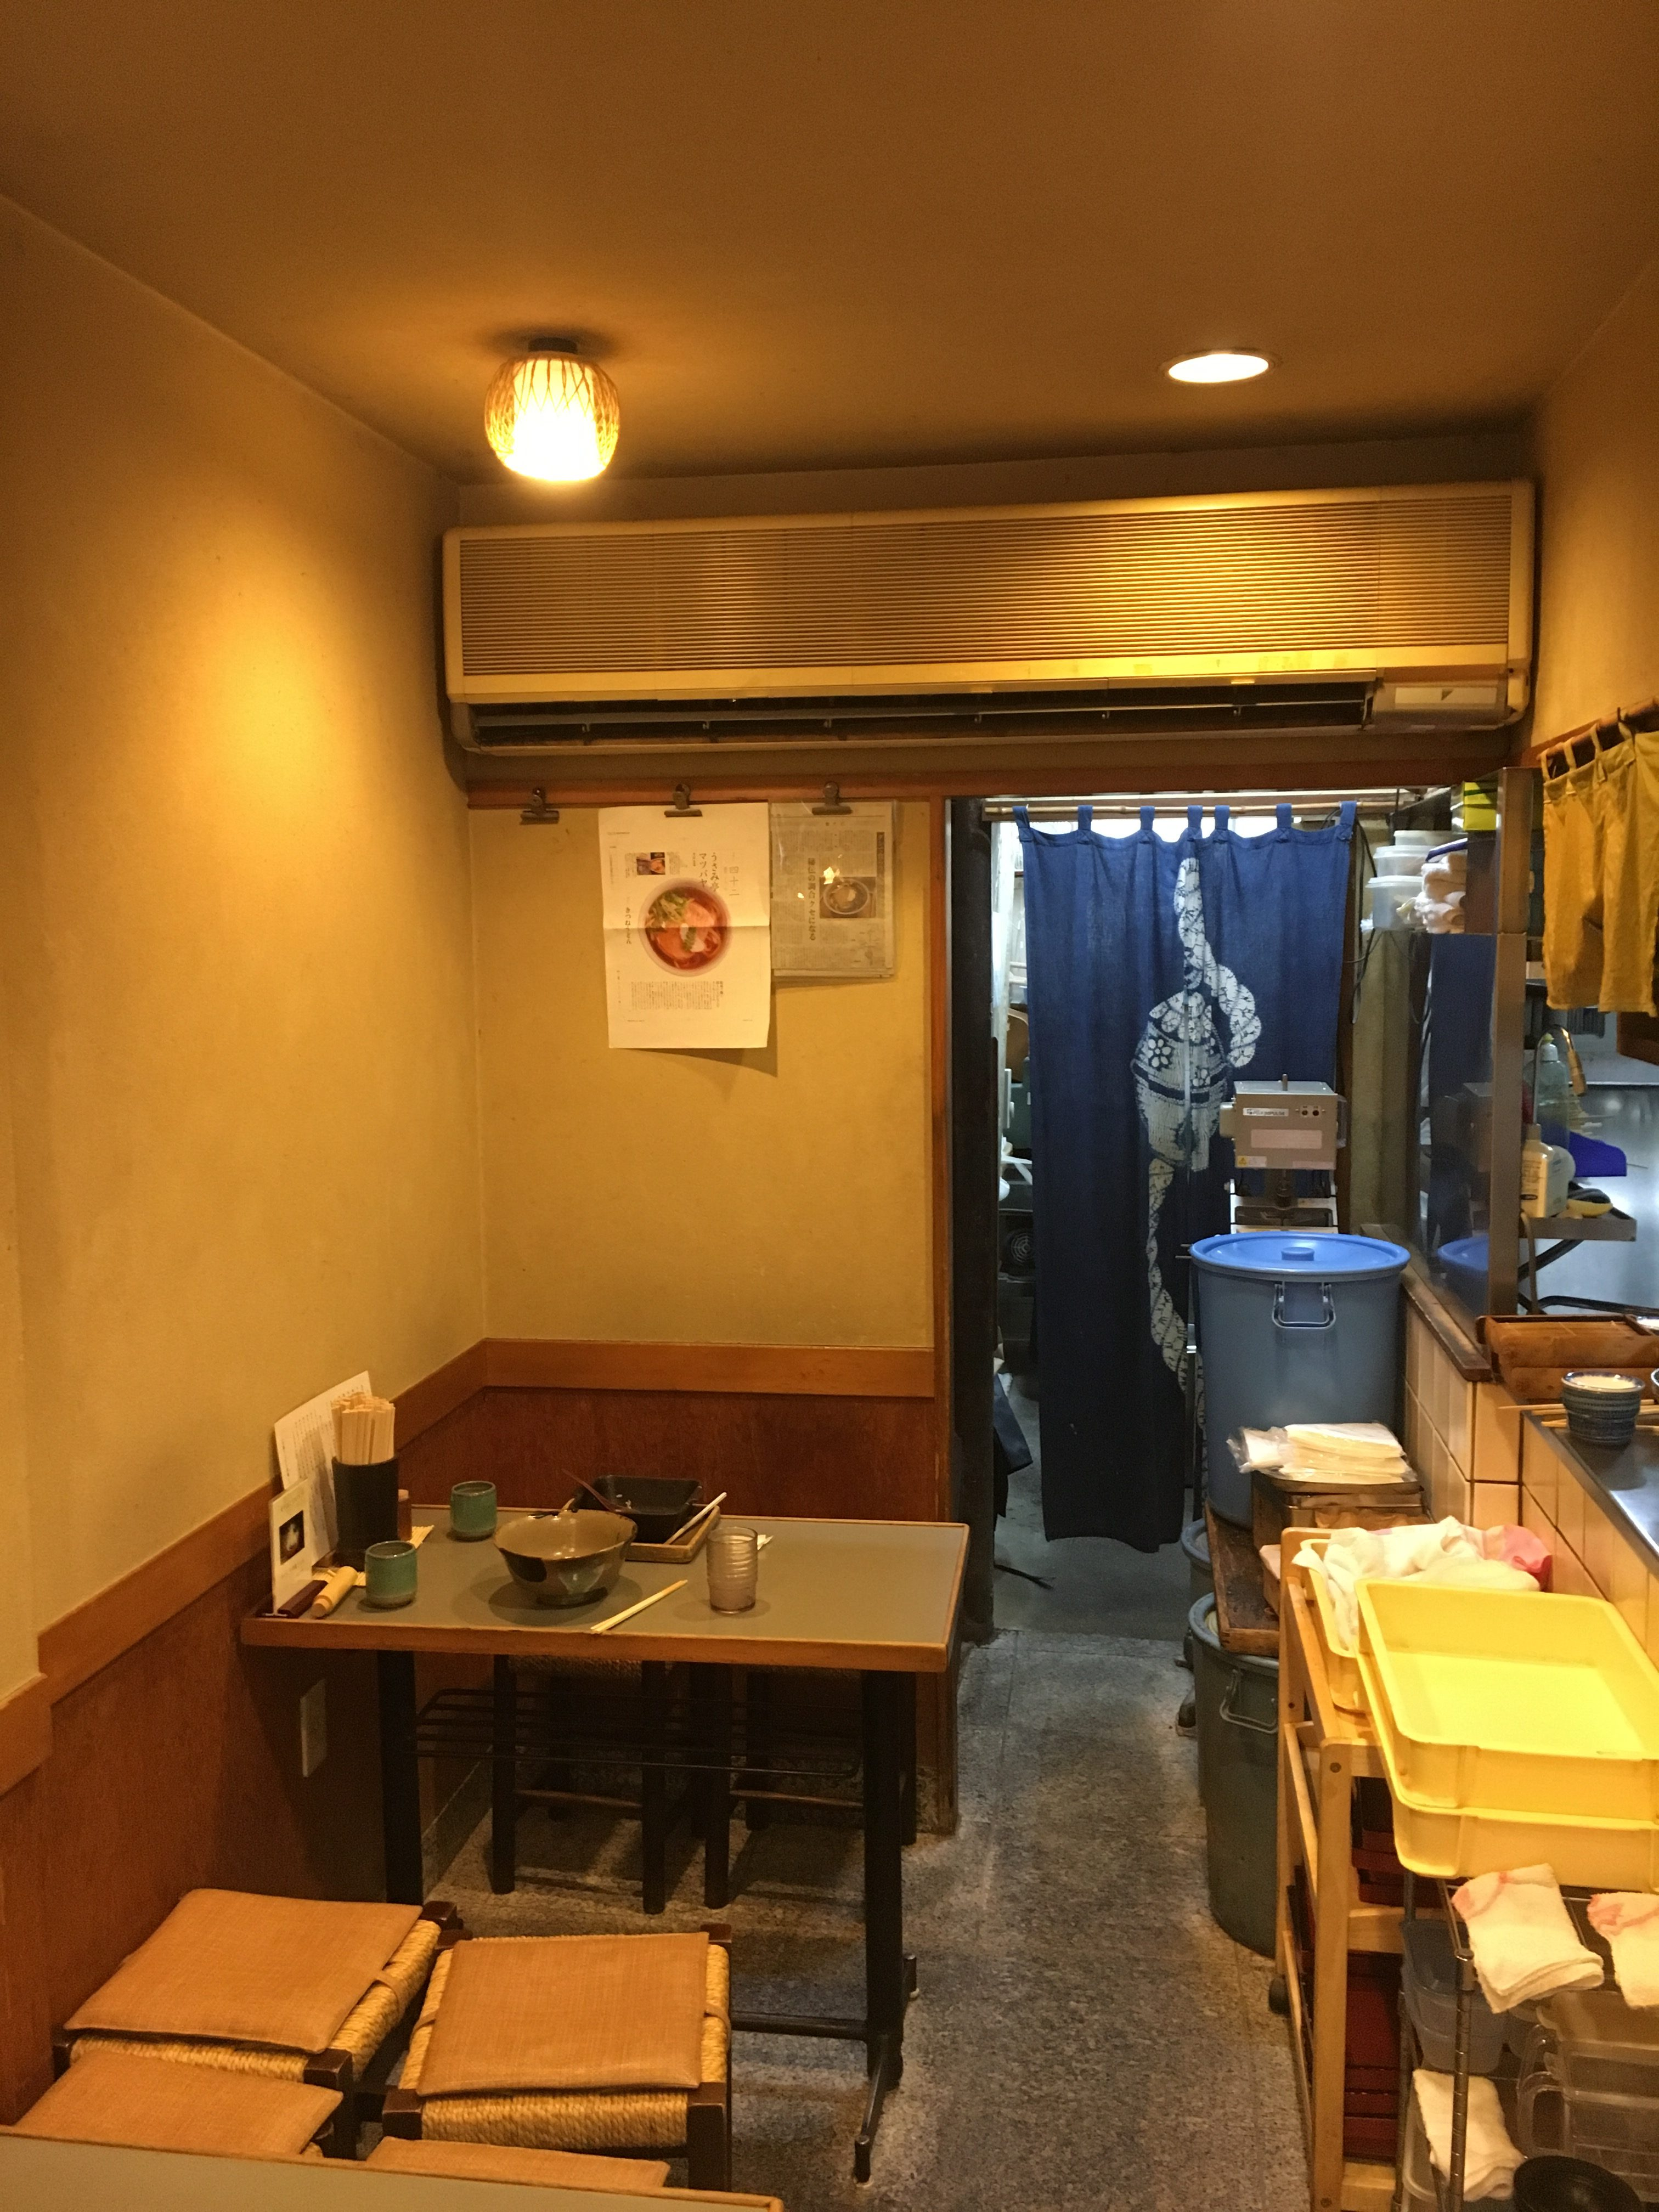 inside of Japanese udon restaurant very small with small seats and tables